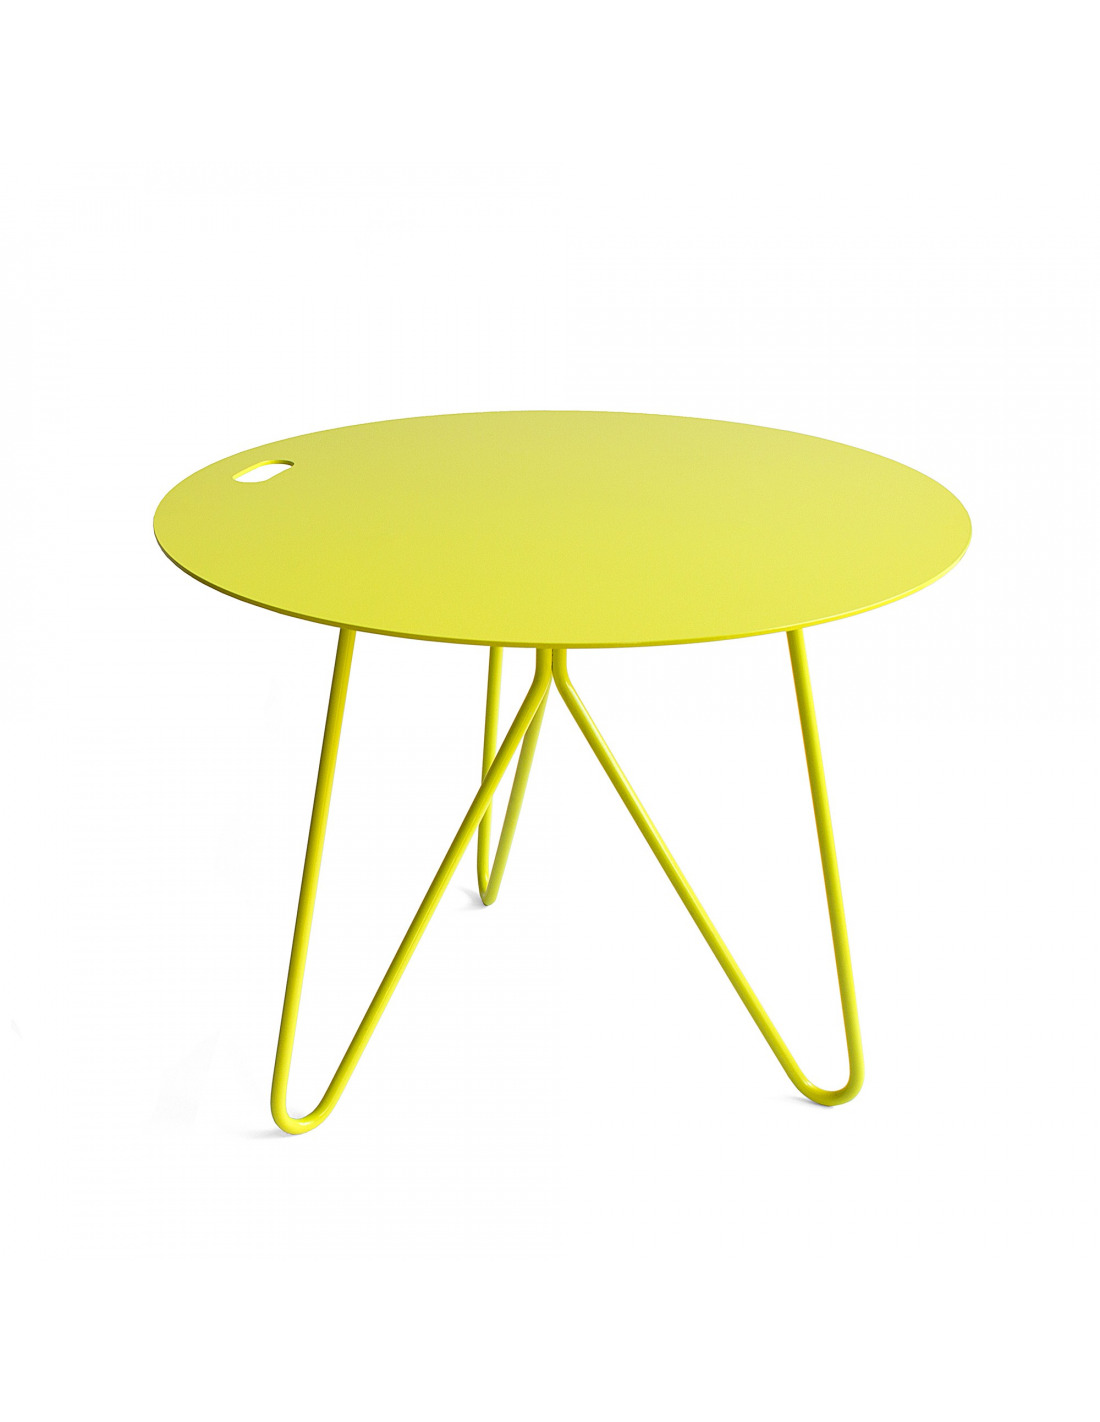 Table basse design seis en acier par filipa mendes for Table basse en acier design